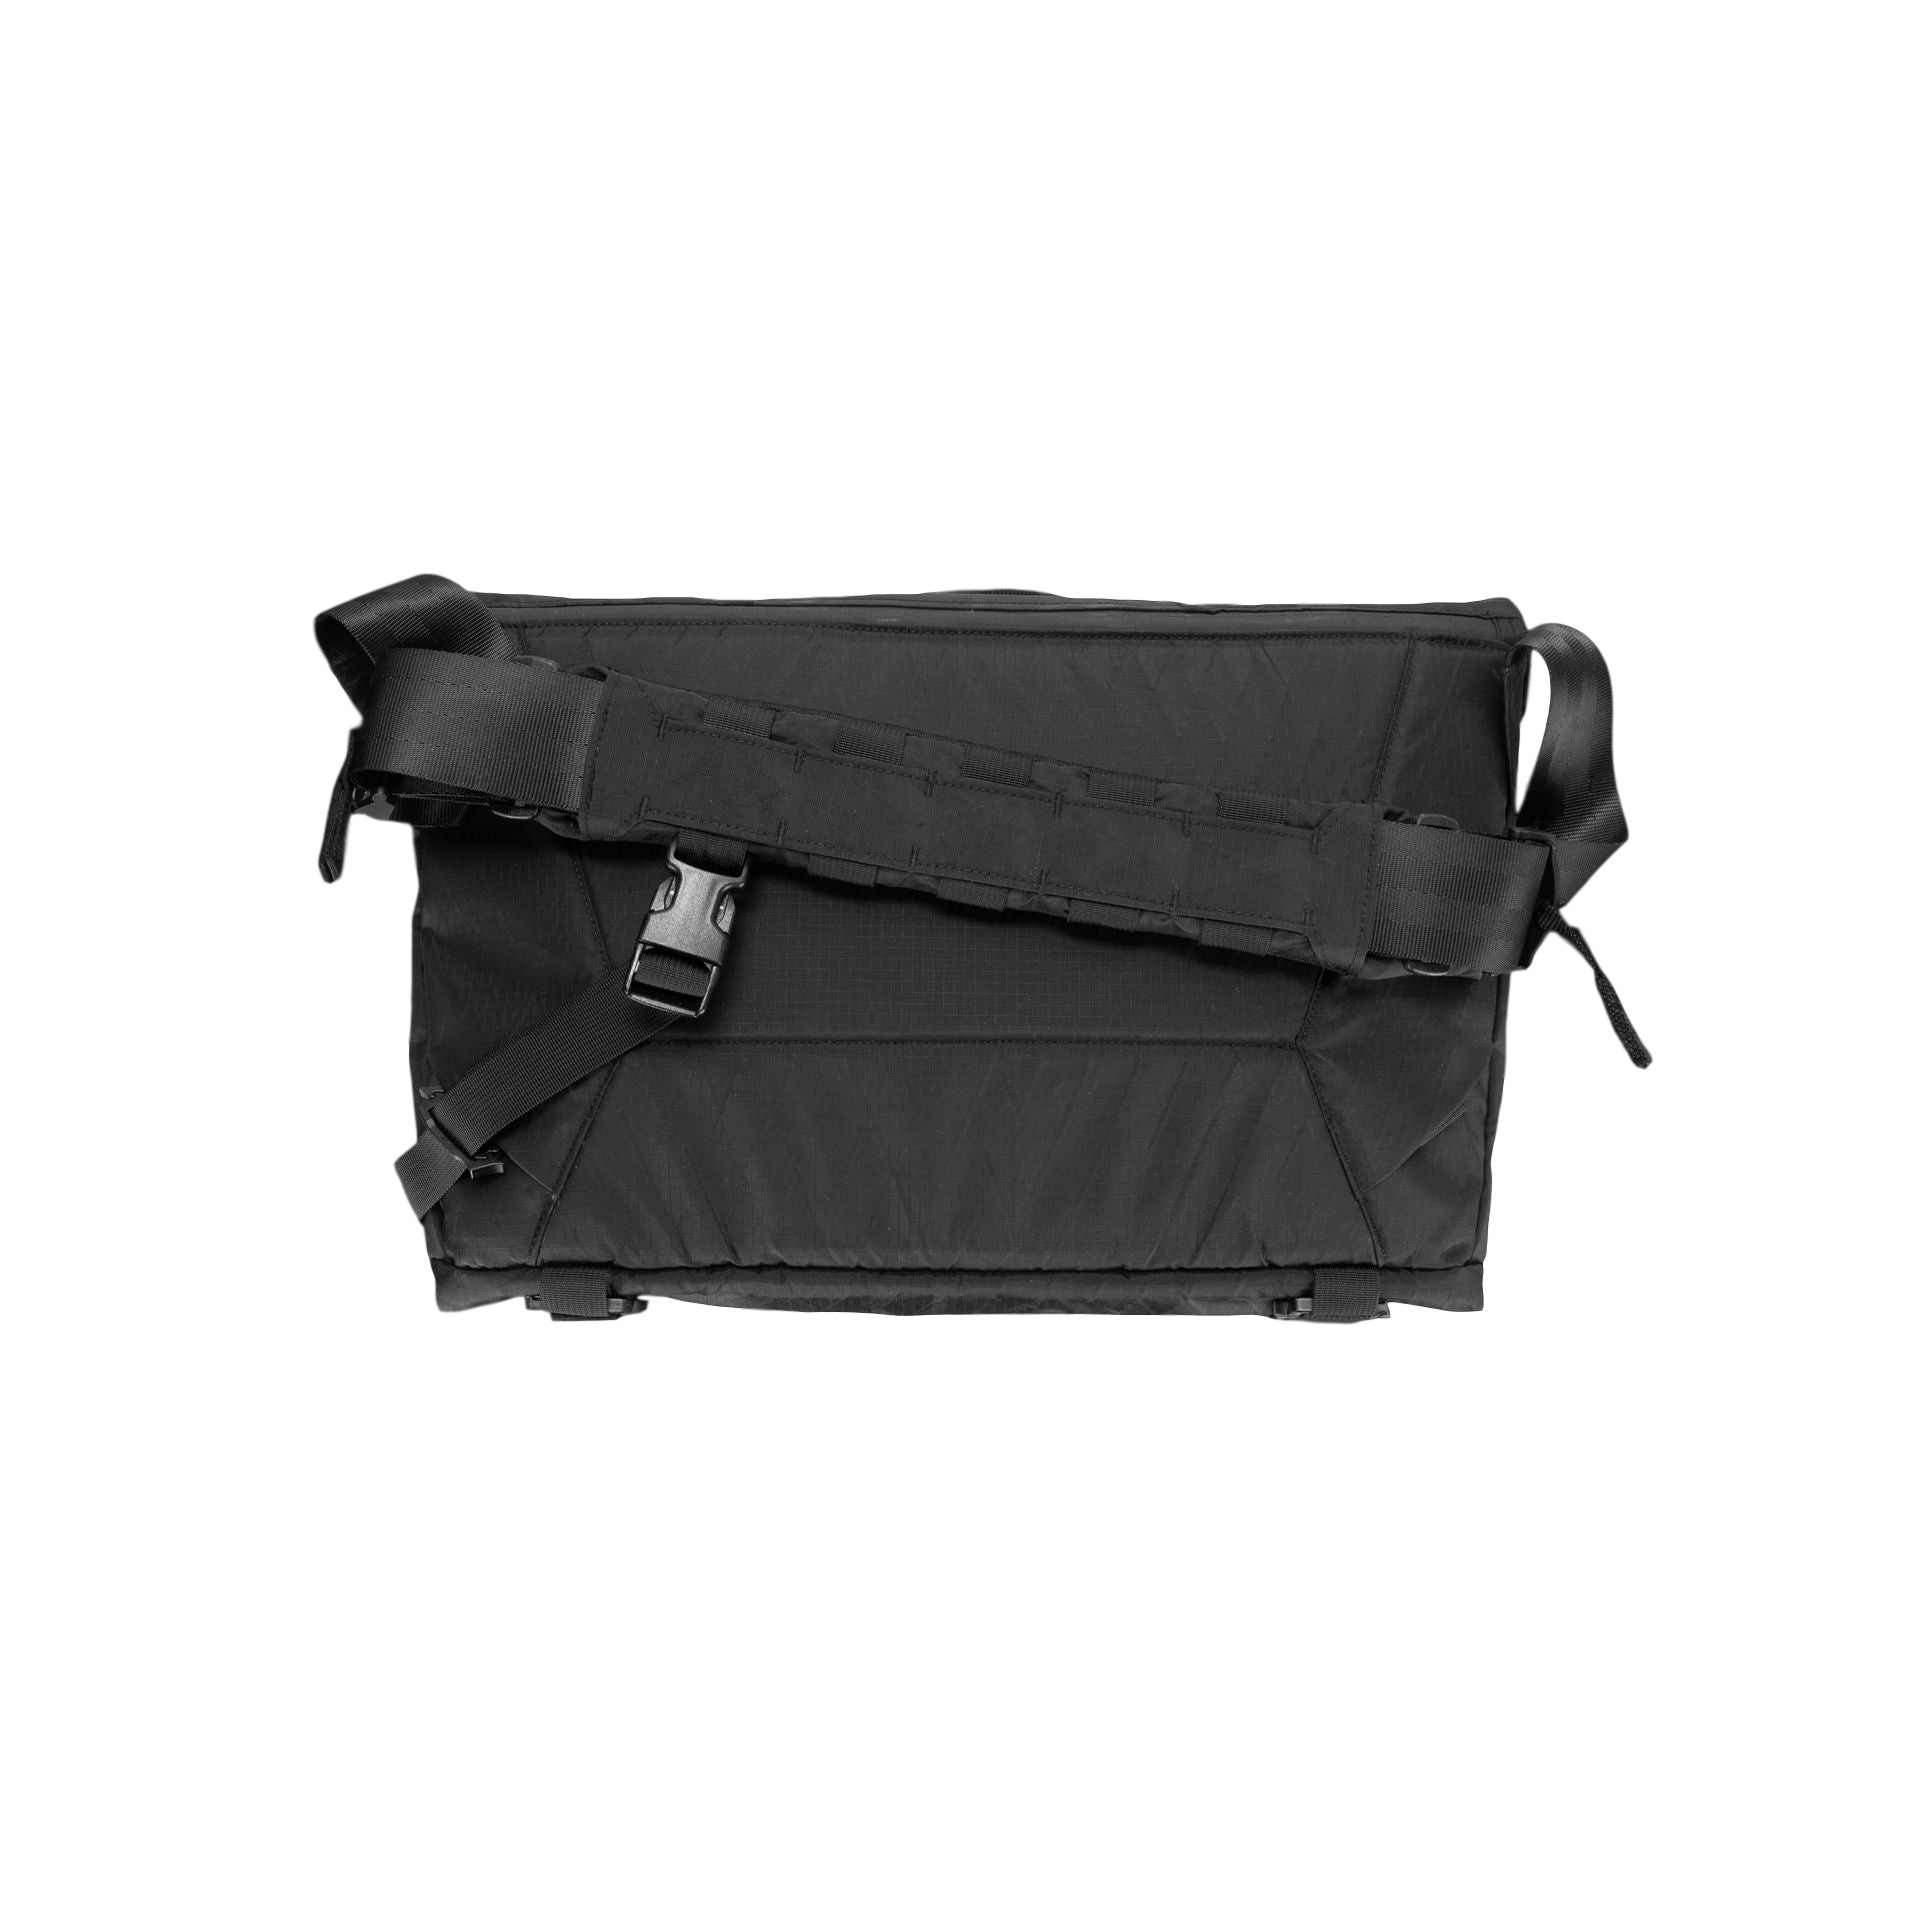 Triple Aught Design Parallax Messenger Bag 15L